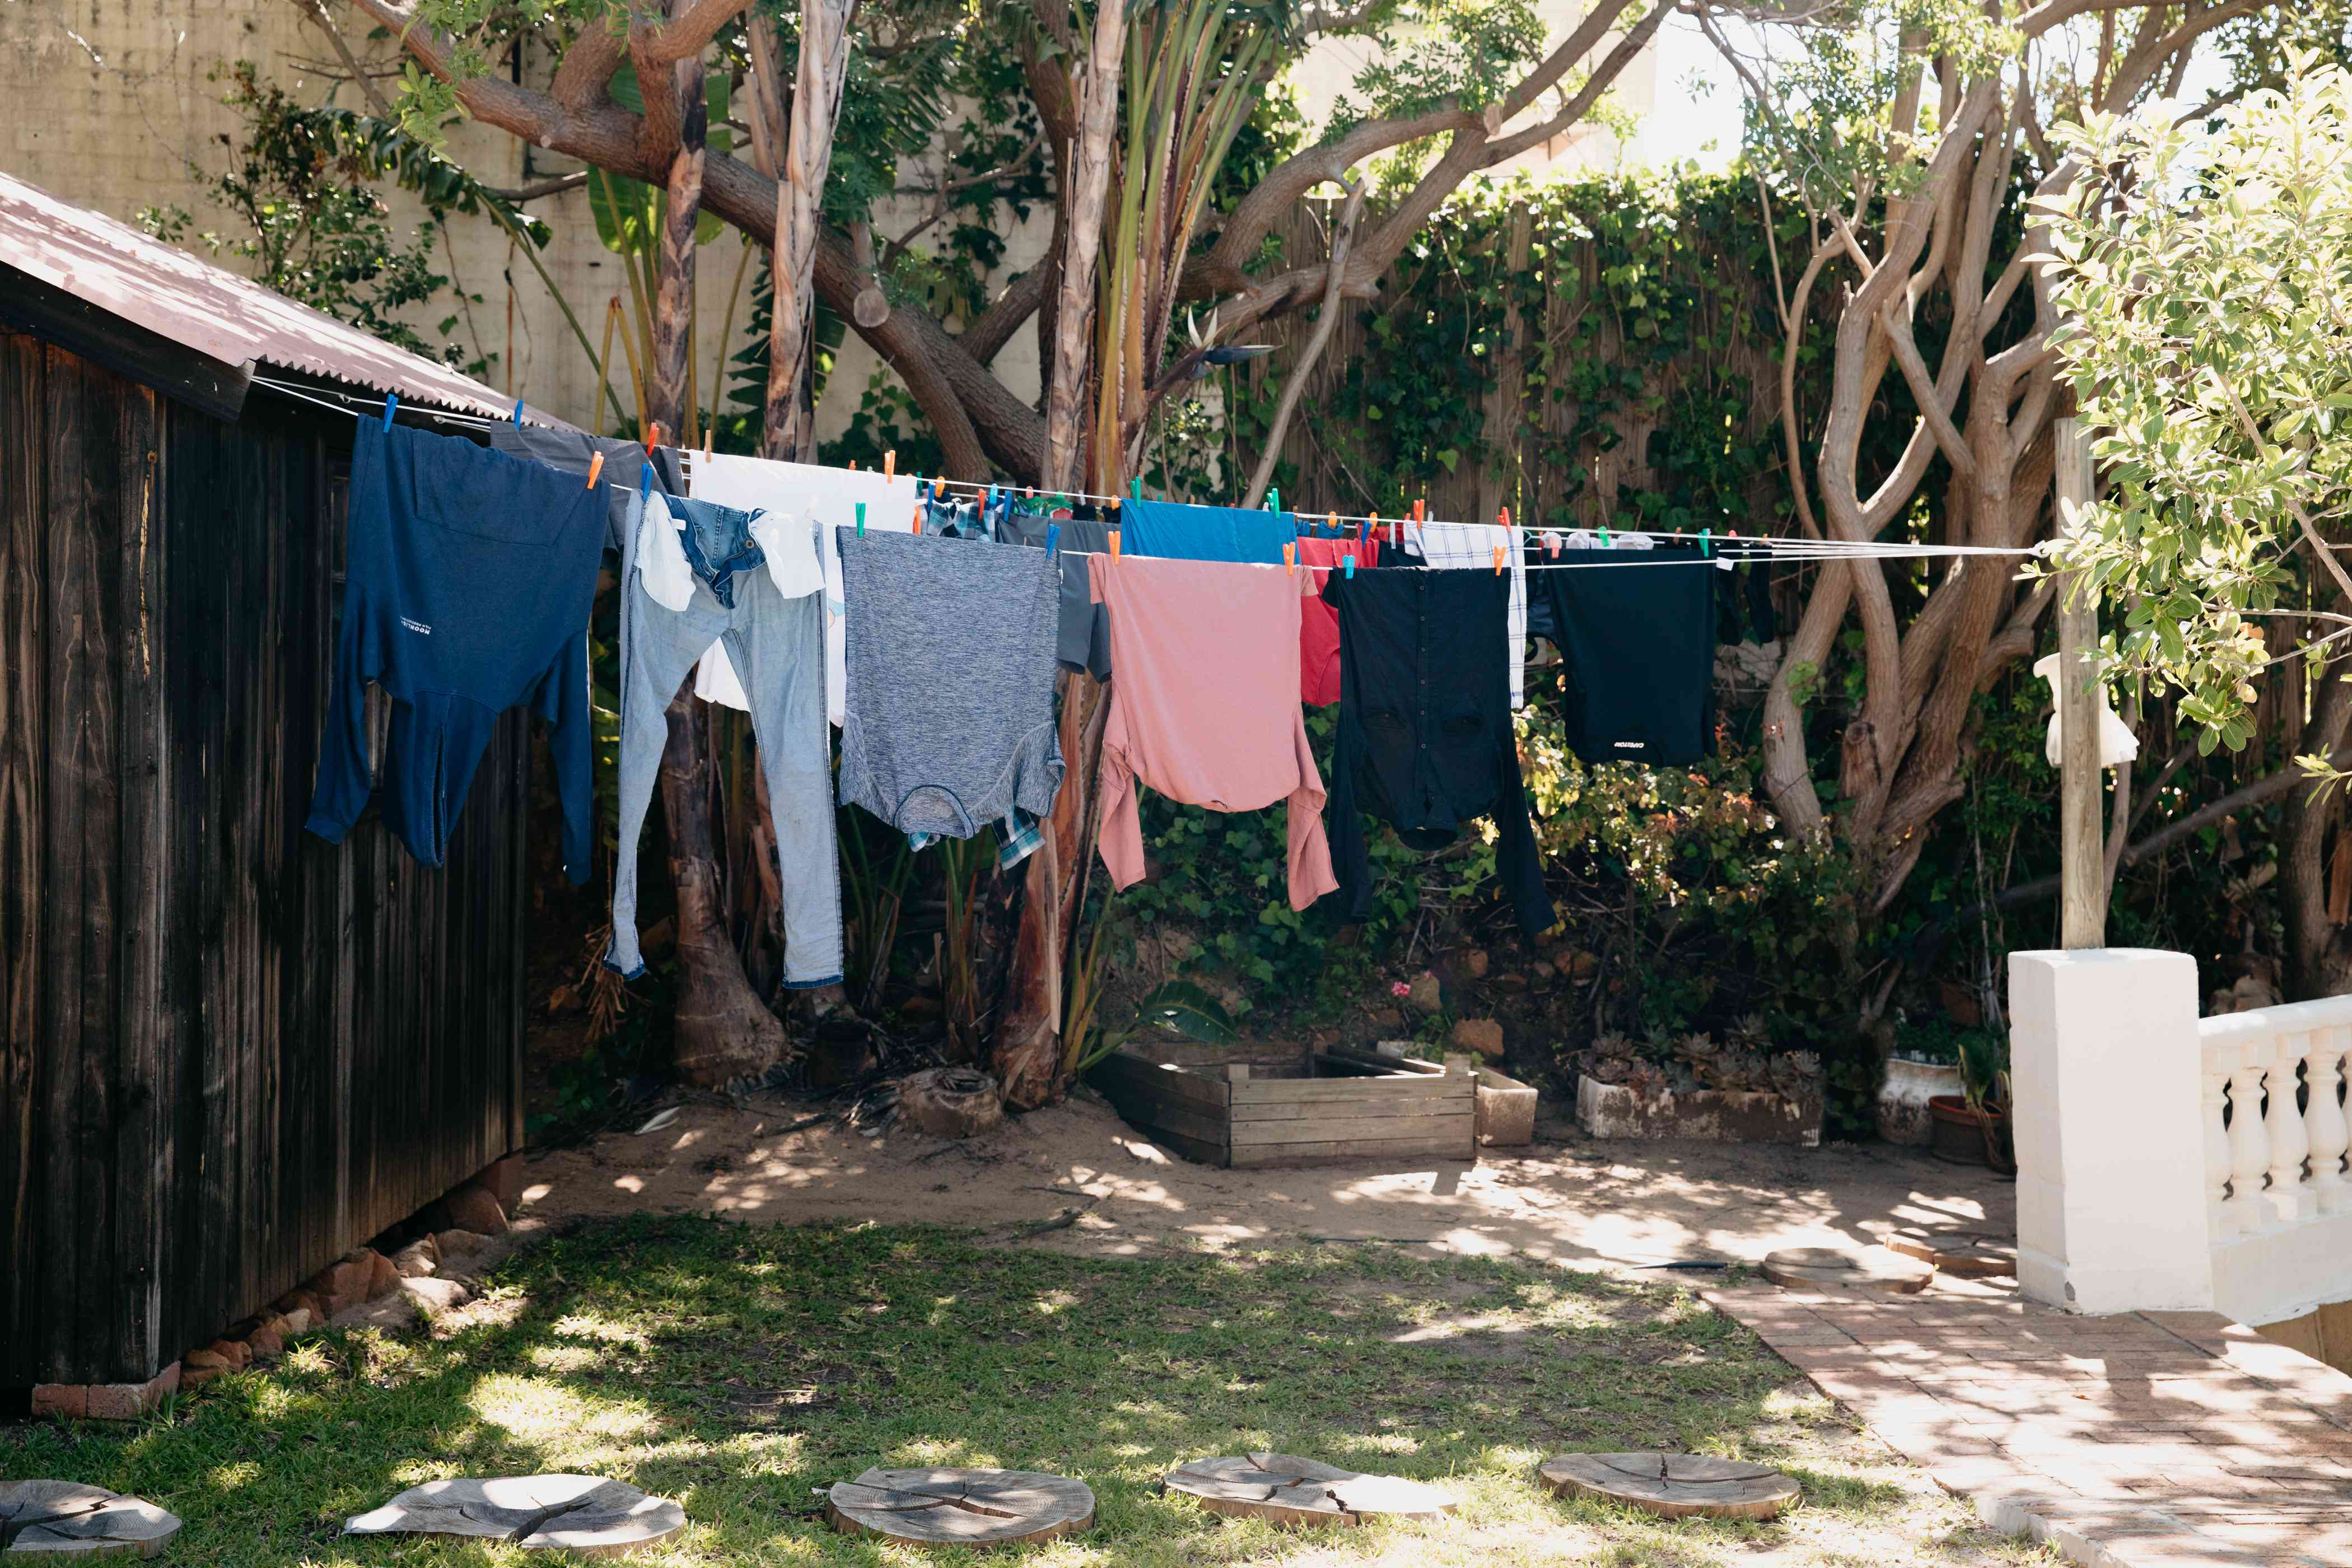 clothes line-drying outside